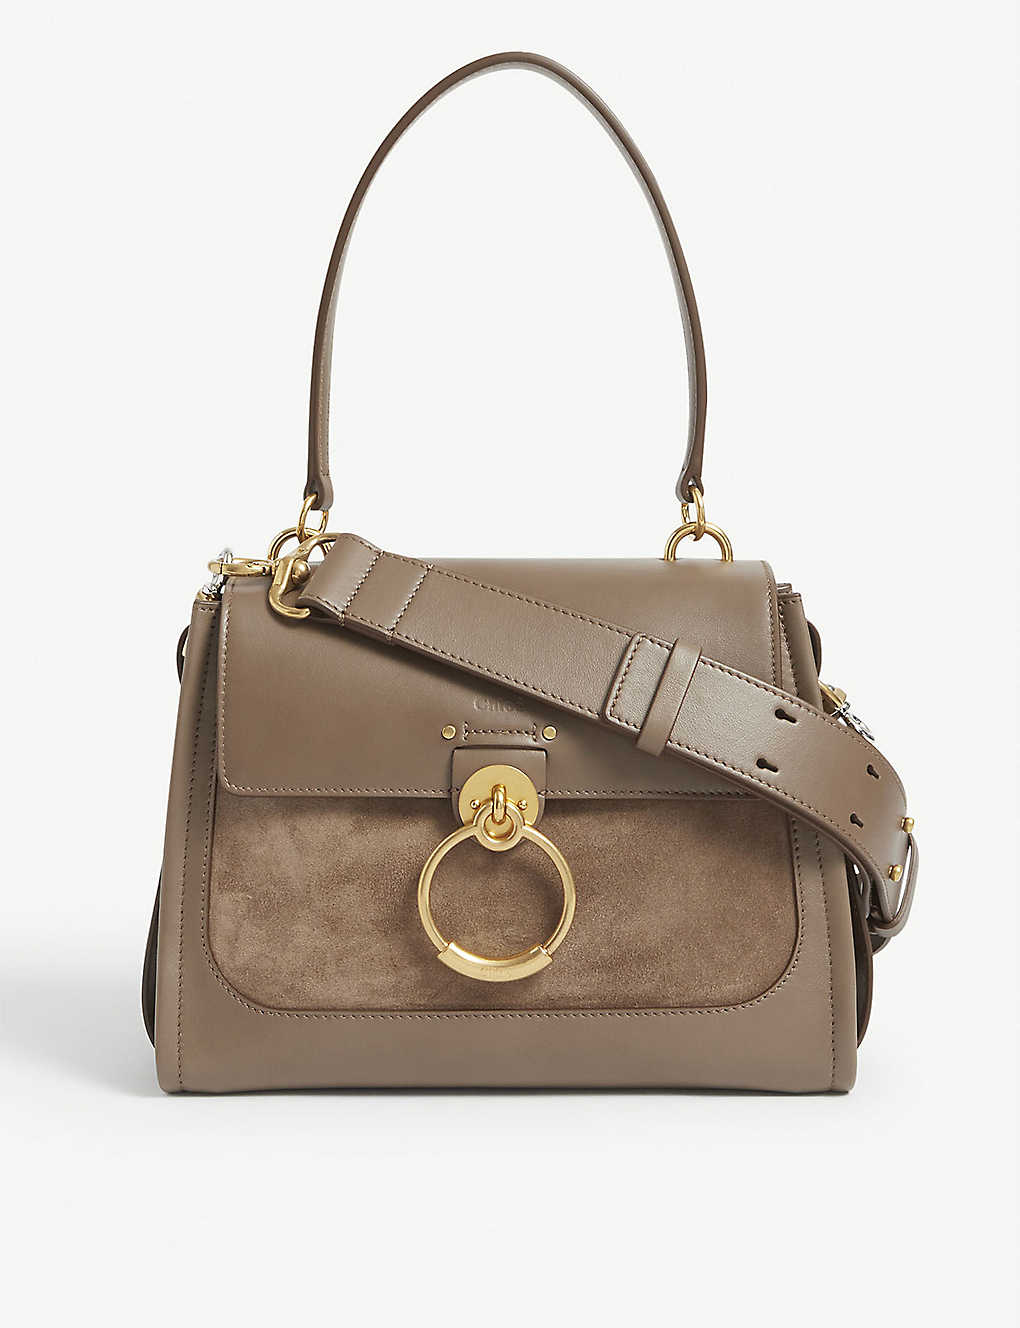 CHLOE: Tess Day small leather bag